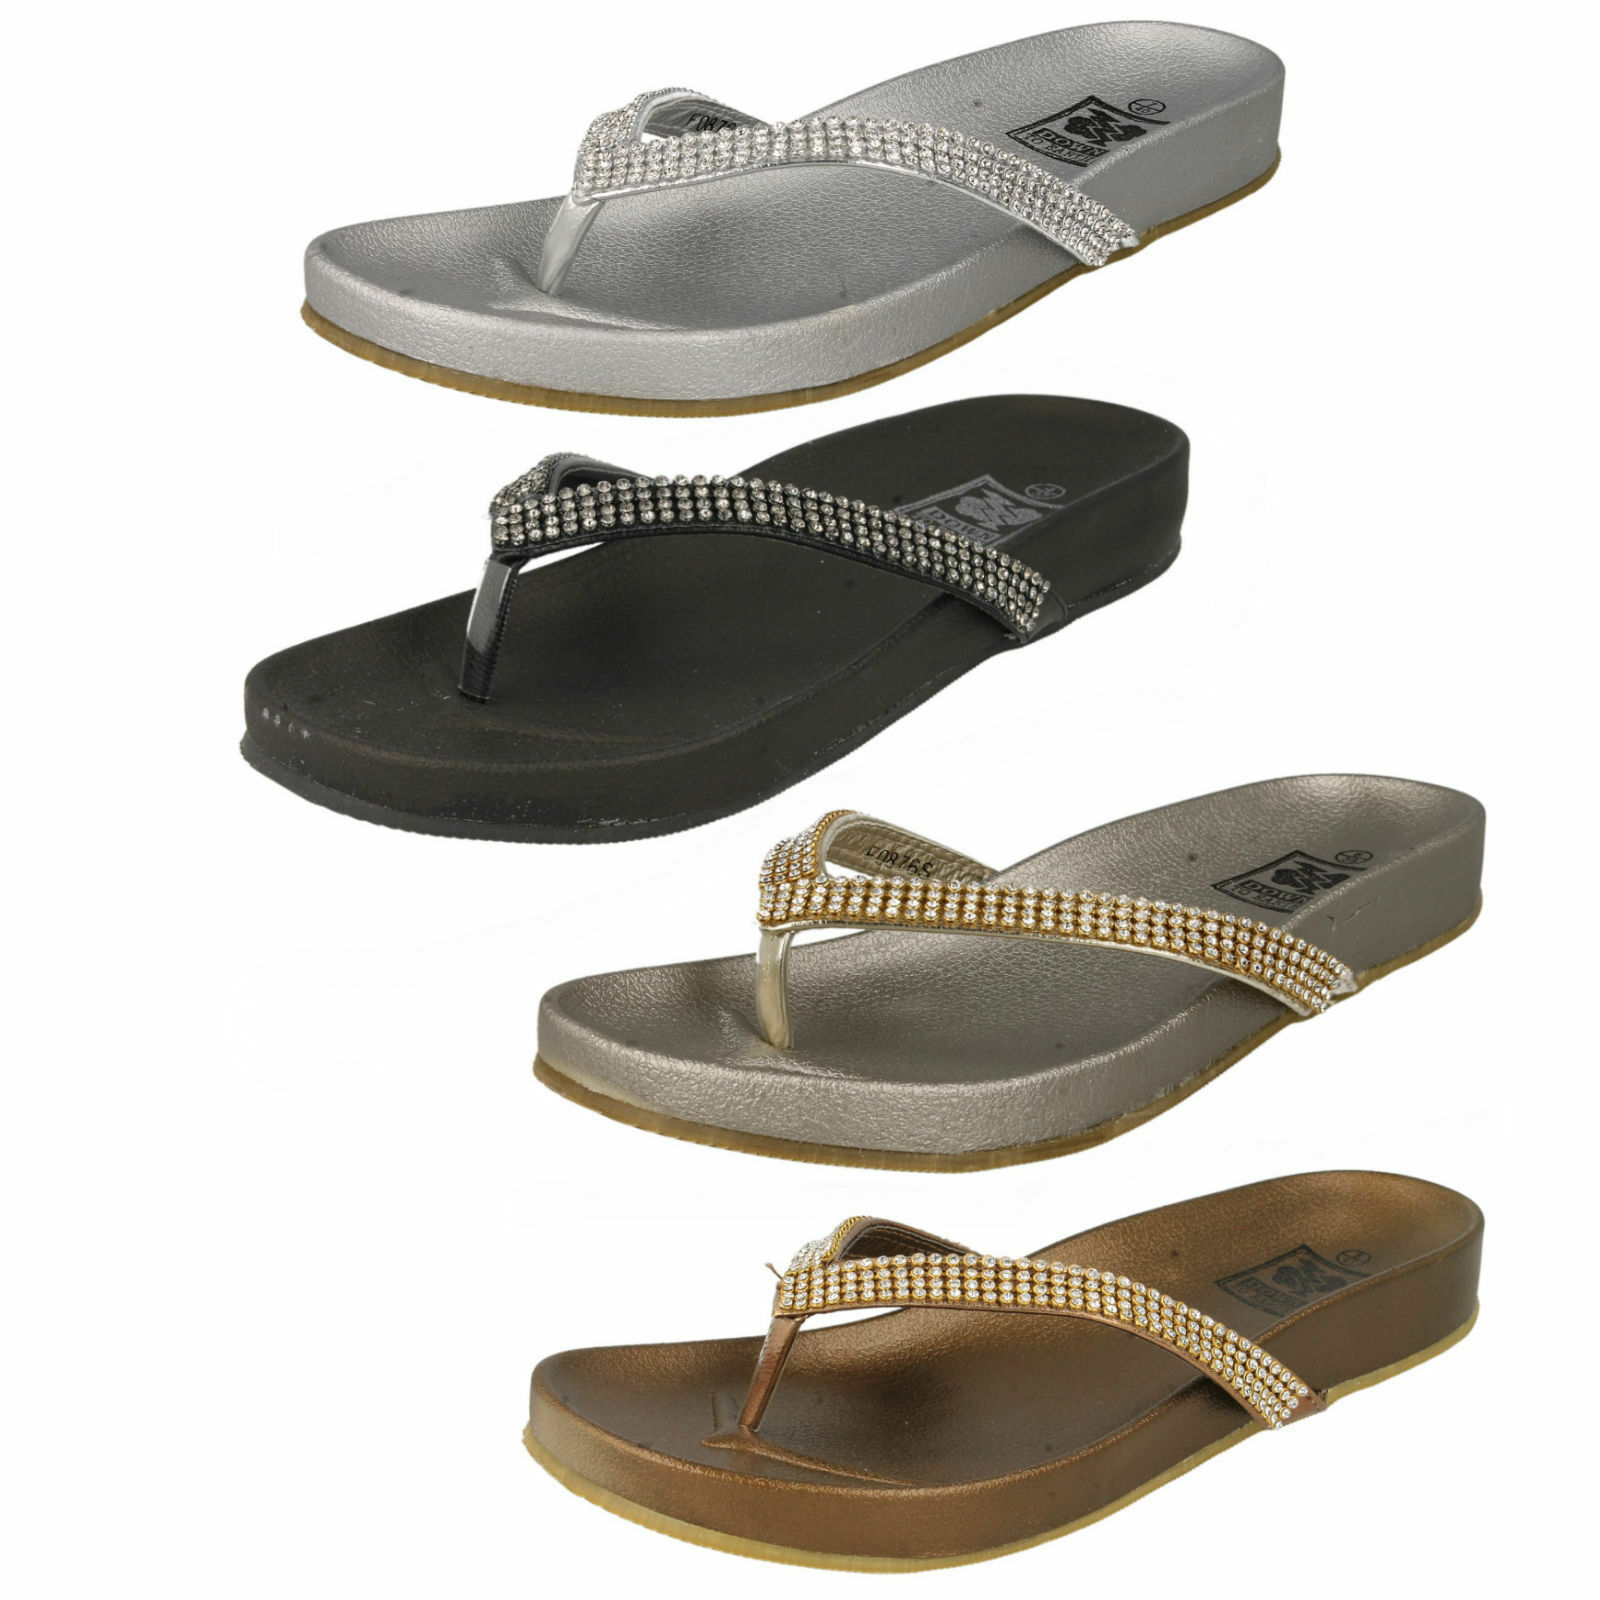 SALE Ladies F0876s Toe Down post flip flops By Down Toe To Earth Retail 5db167